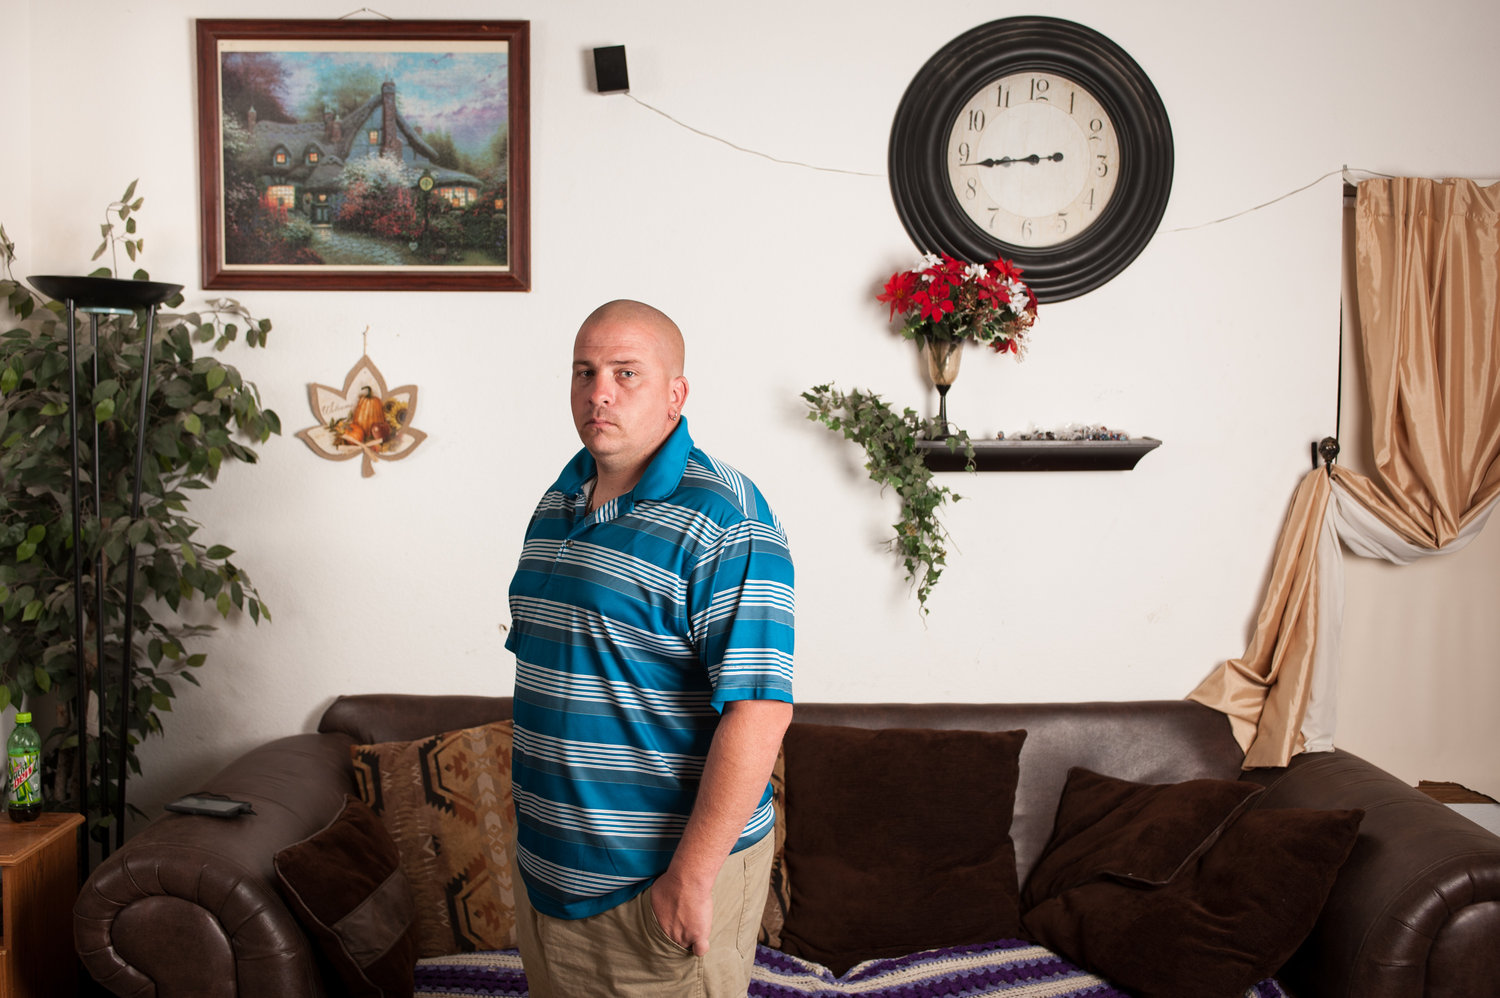 James Vanni, at his home in Colorado Springs, Colo. Theo Stroomer for NPR